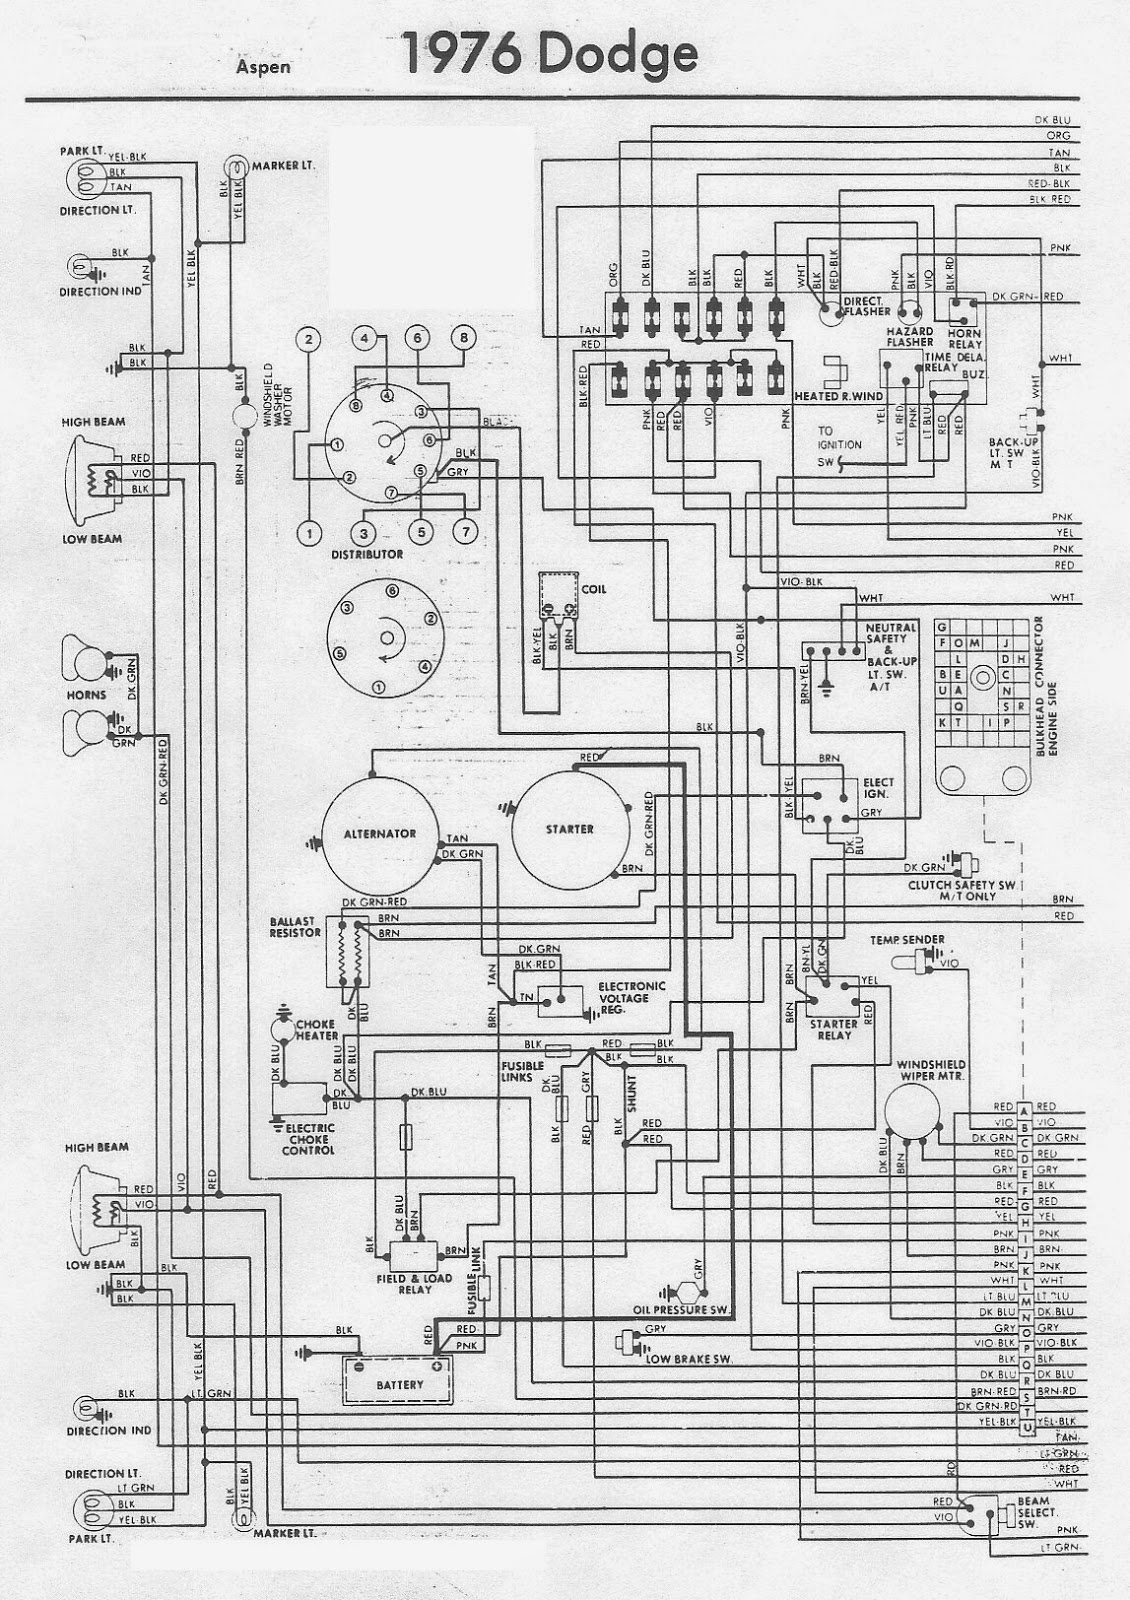 The 1976 Dodge Aspen Wiring Diagram Electrical System